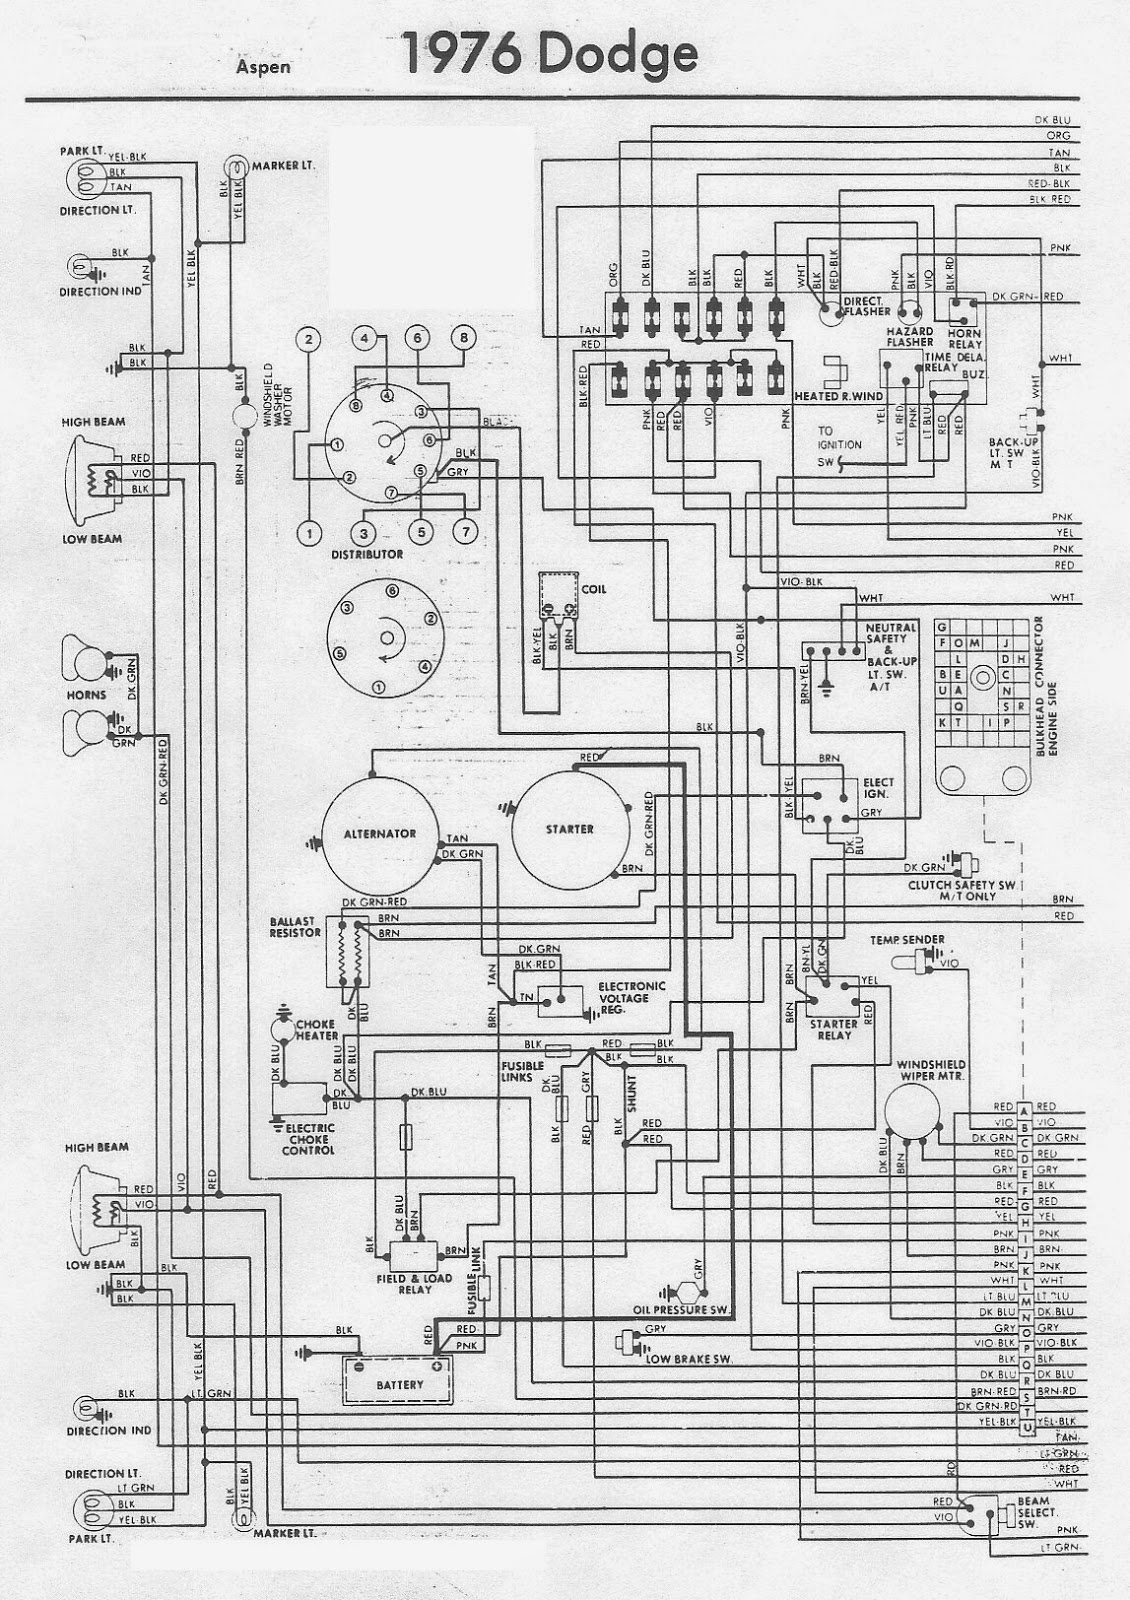 The 1976 Dodge Aspen Wiring Diagram Electrical System